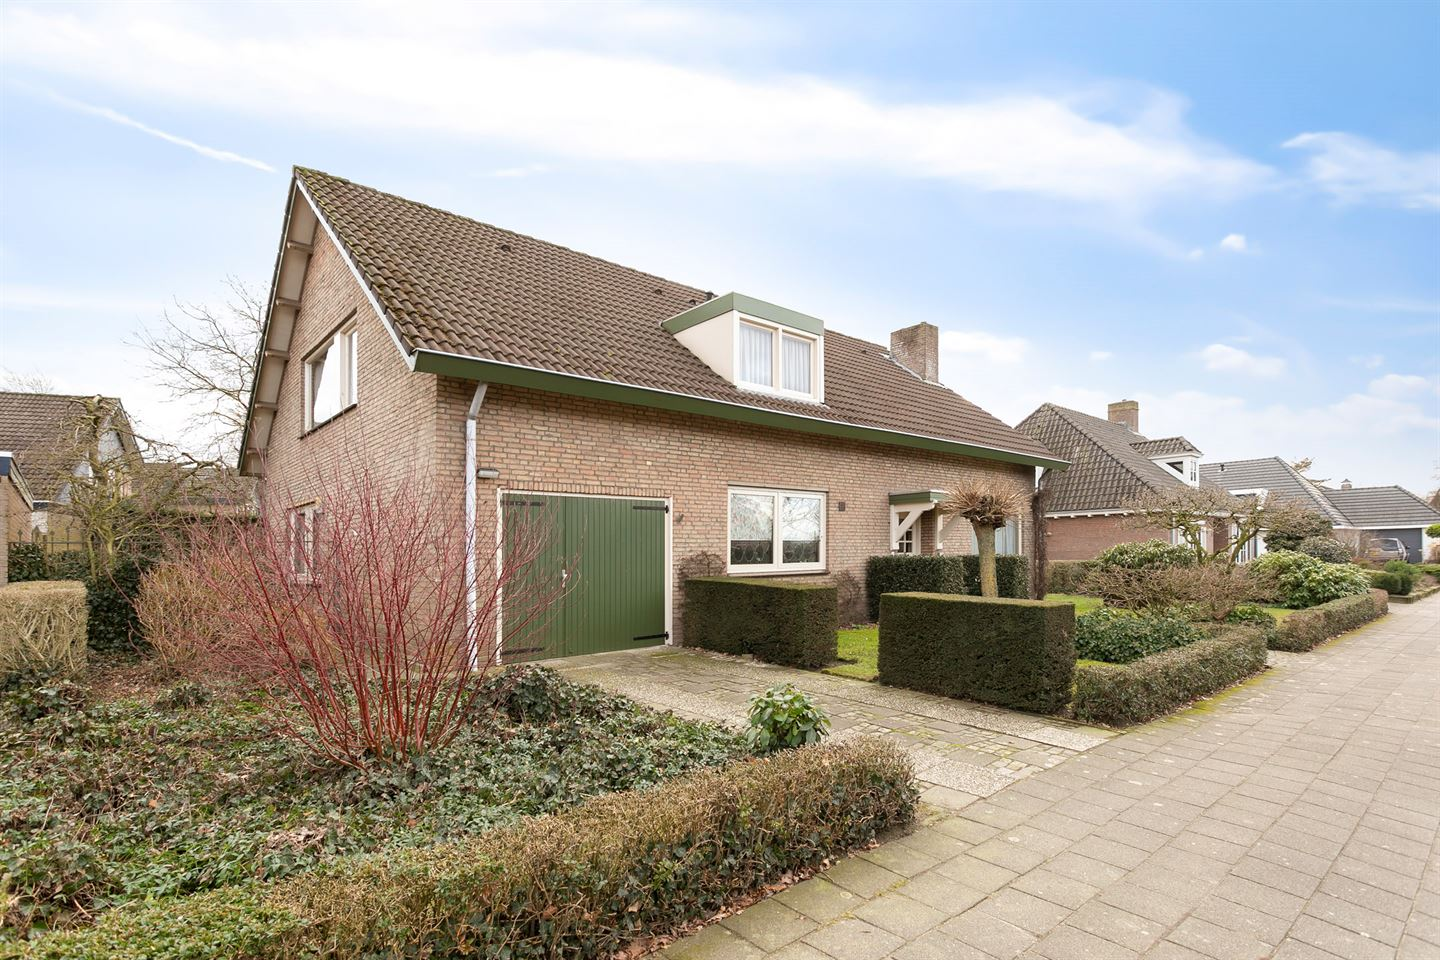 Ostaderstraat 23 5721 Wc Asten.Verkocht Ostaderstraat 1 5721 Wc Asten Funda